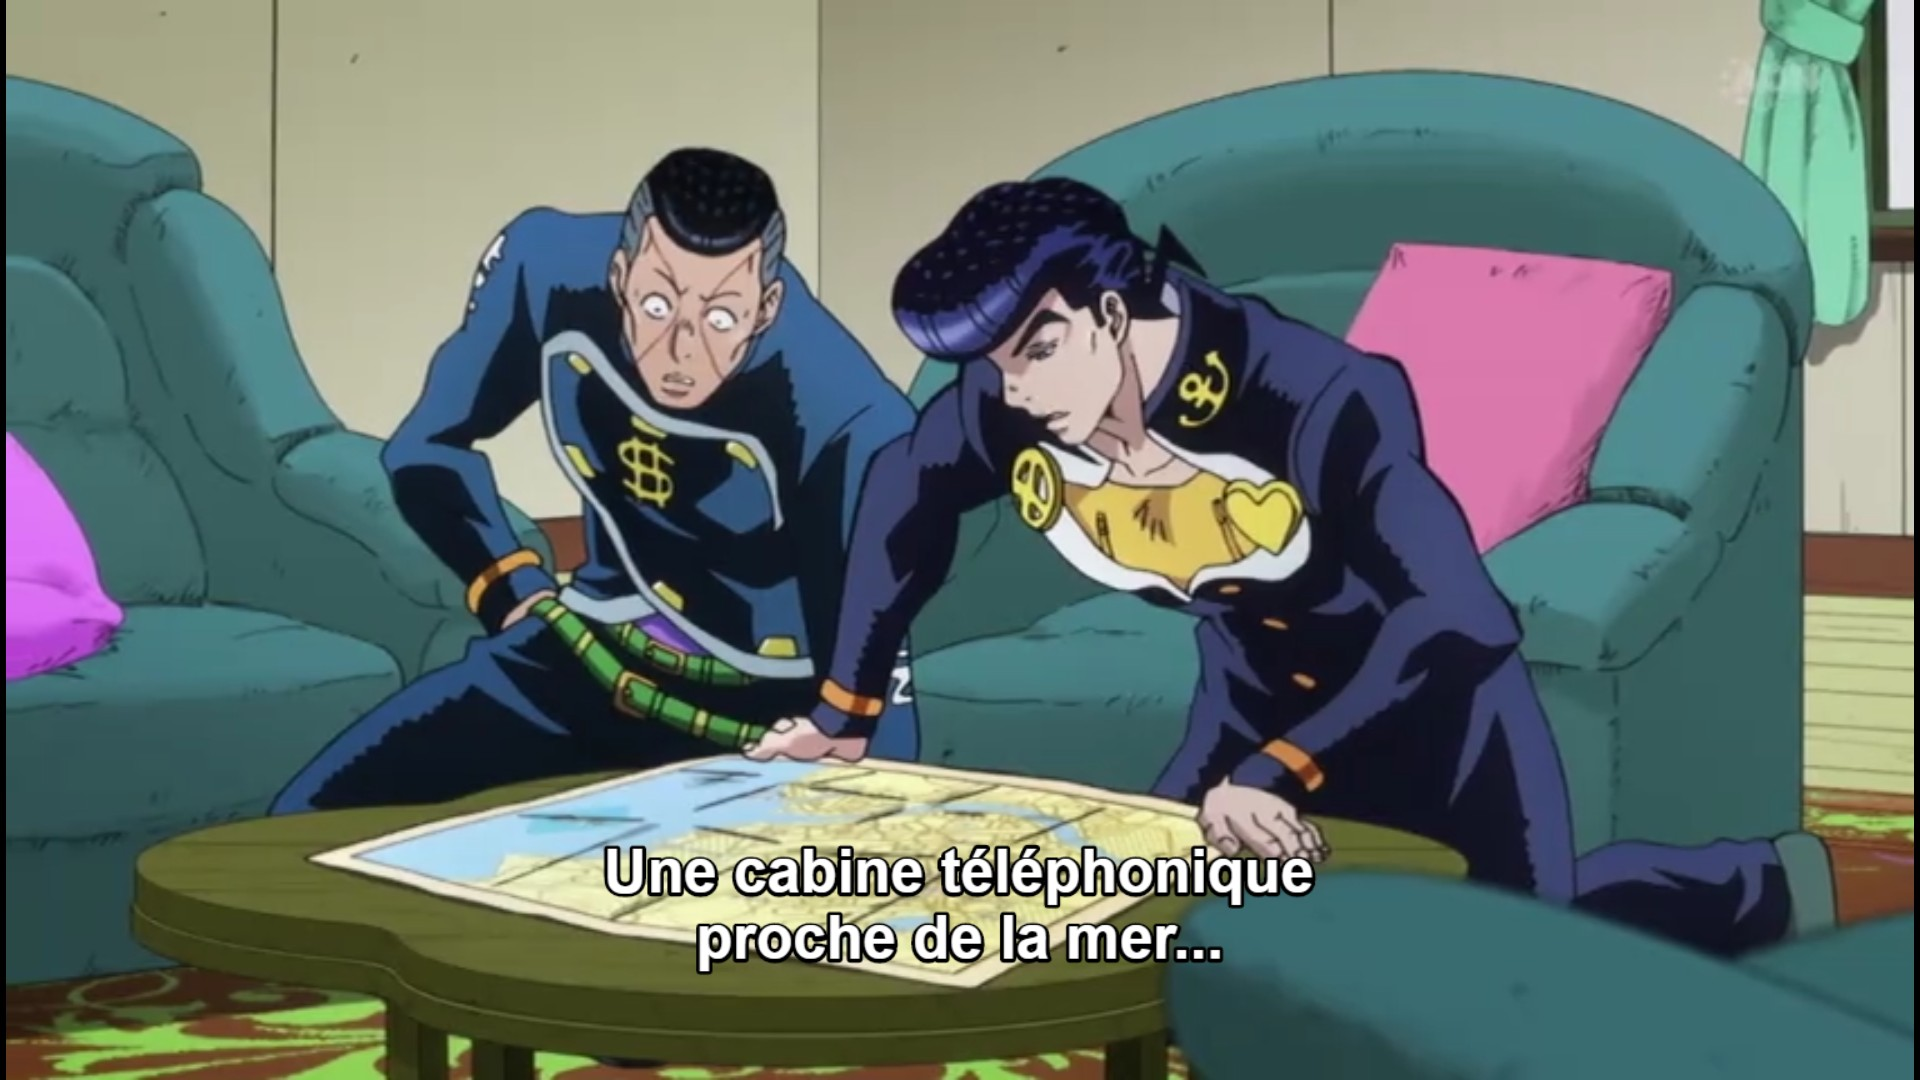 Jojo's Bizarre Adventure Saison 3 Diamond is Unbreakable - Épisode 9 - streaming - VOSTFR - ADN - Google Chrome_31